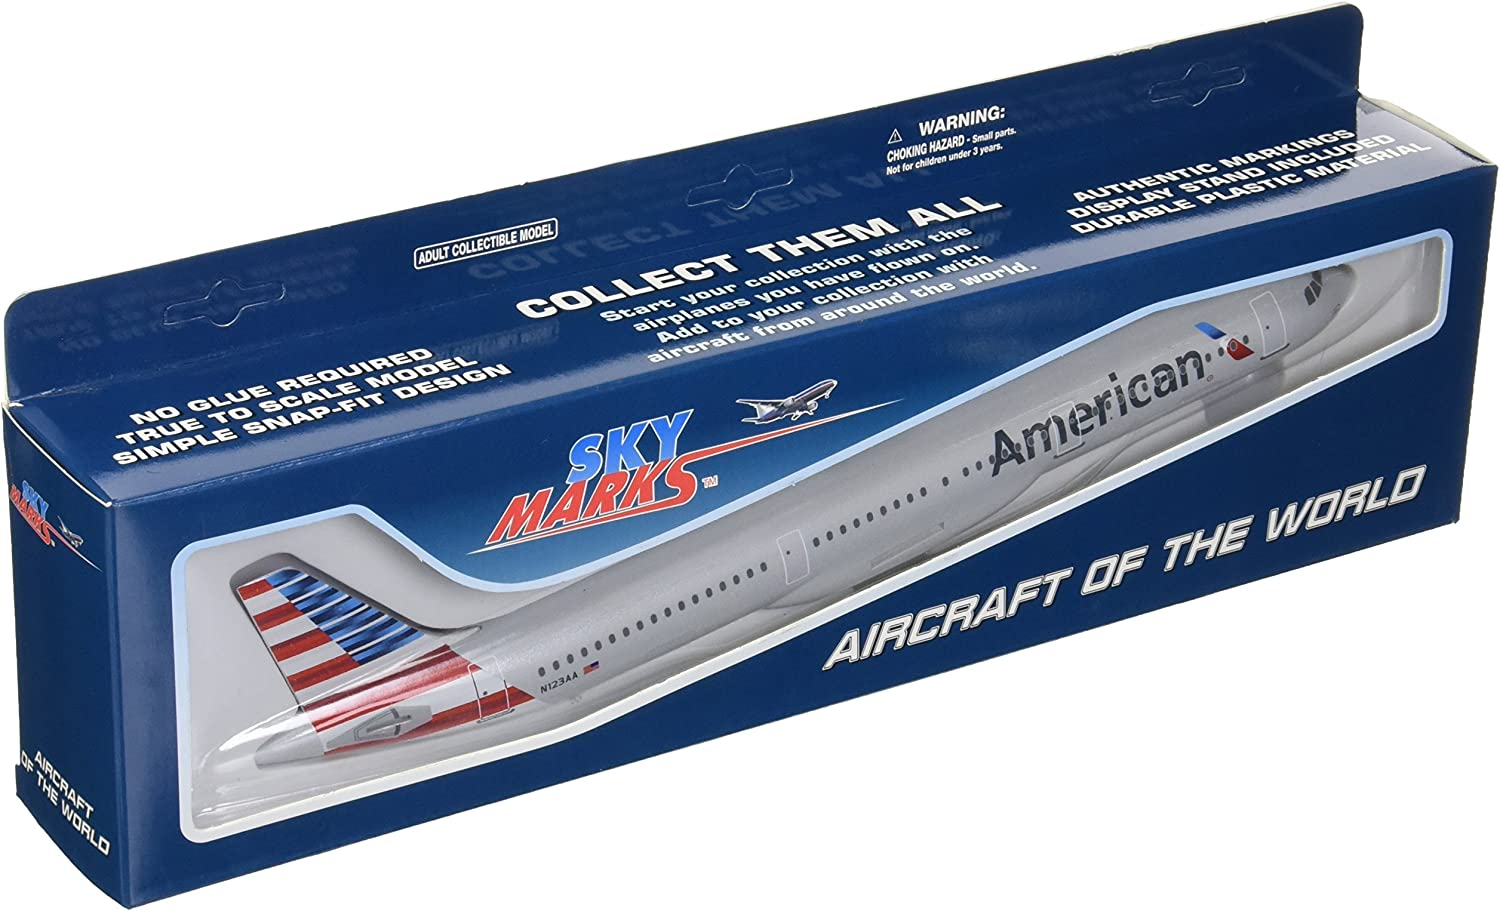 Daron Skymarks American A321 New Livery Aircraft (1/150 Scale)